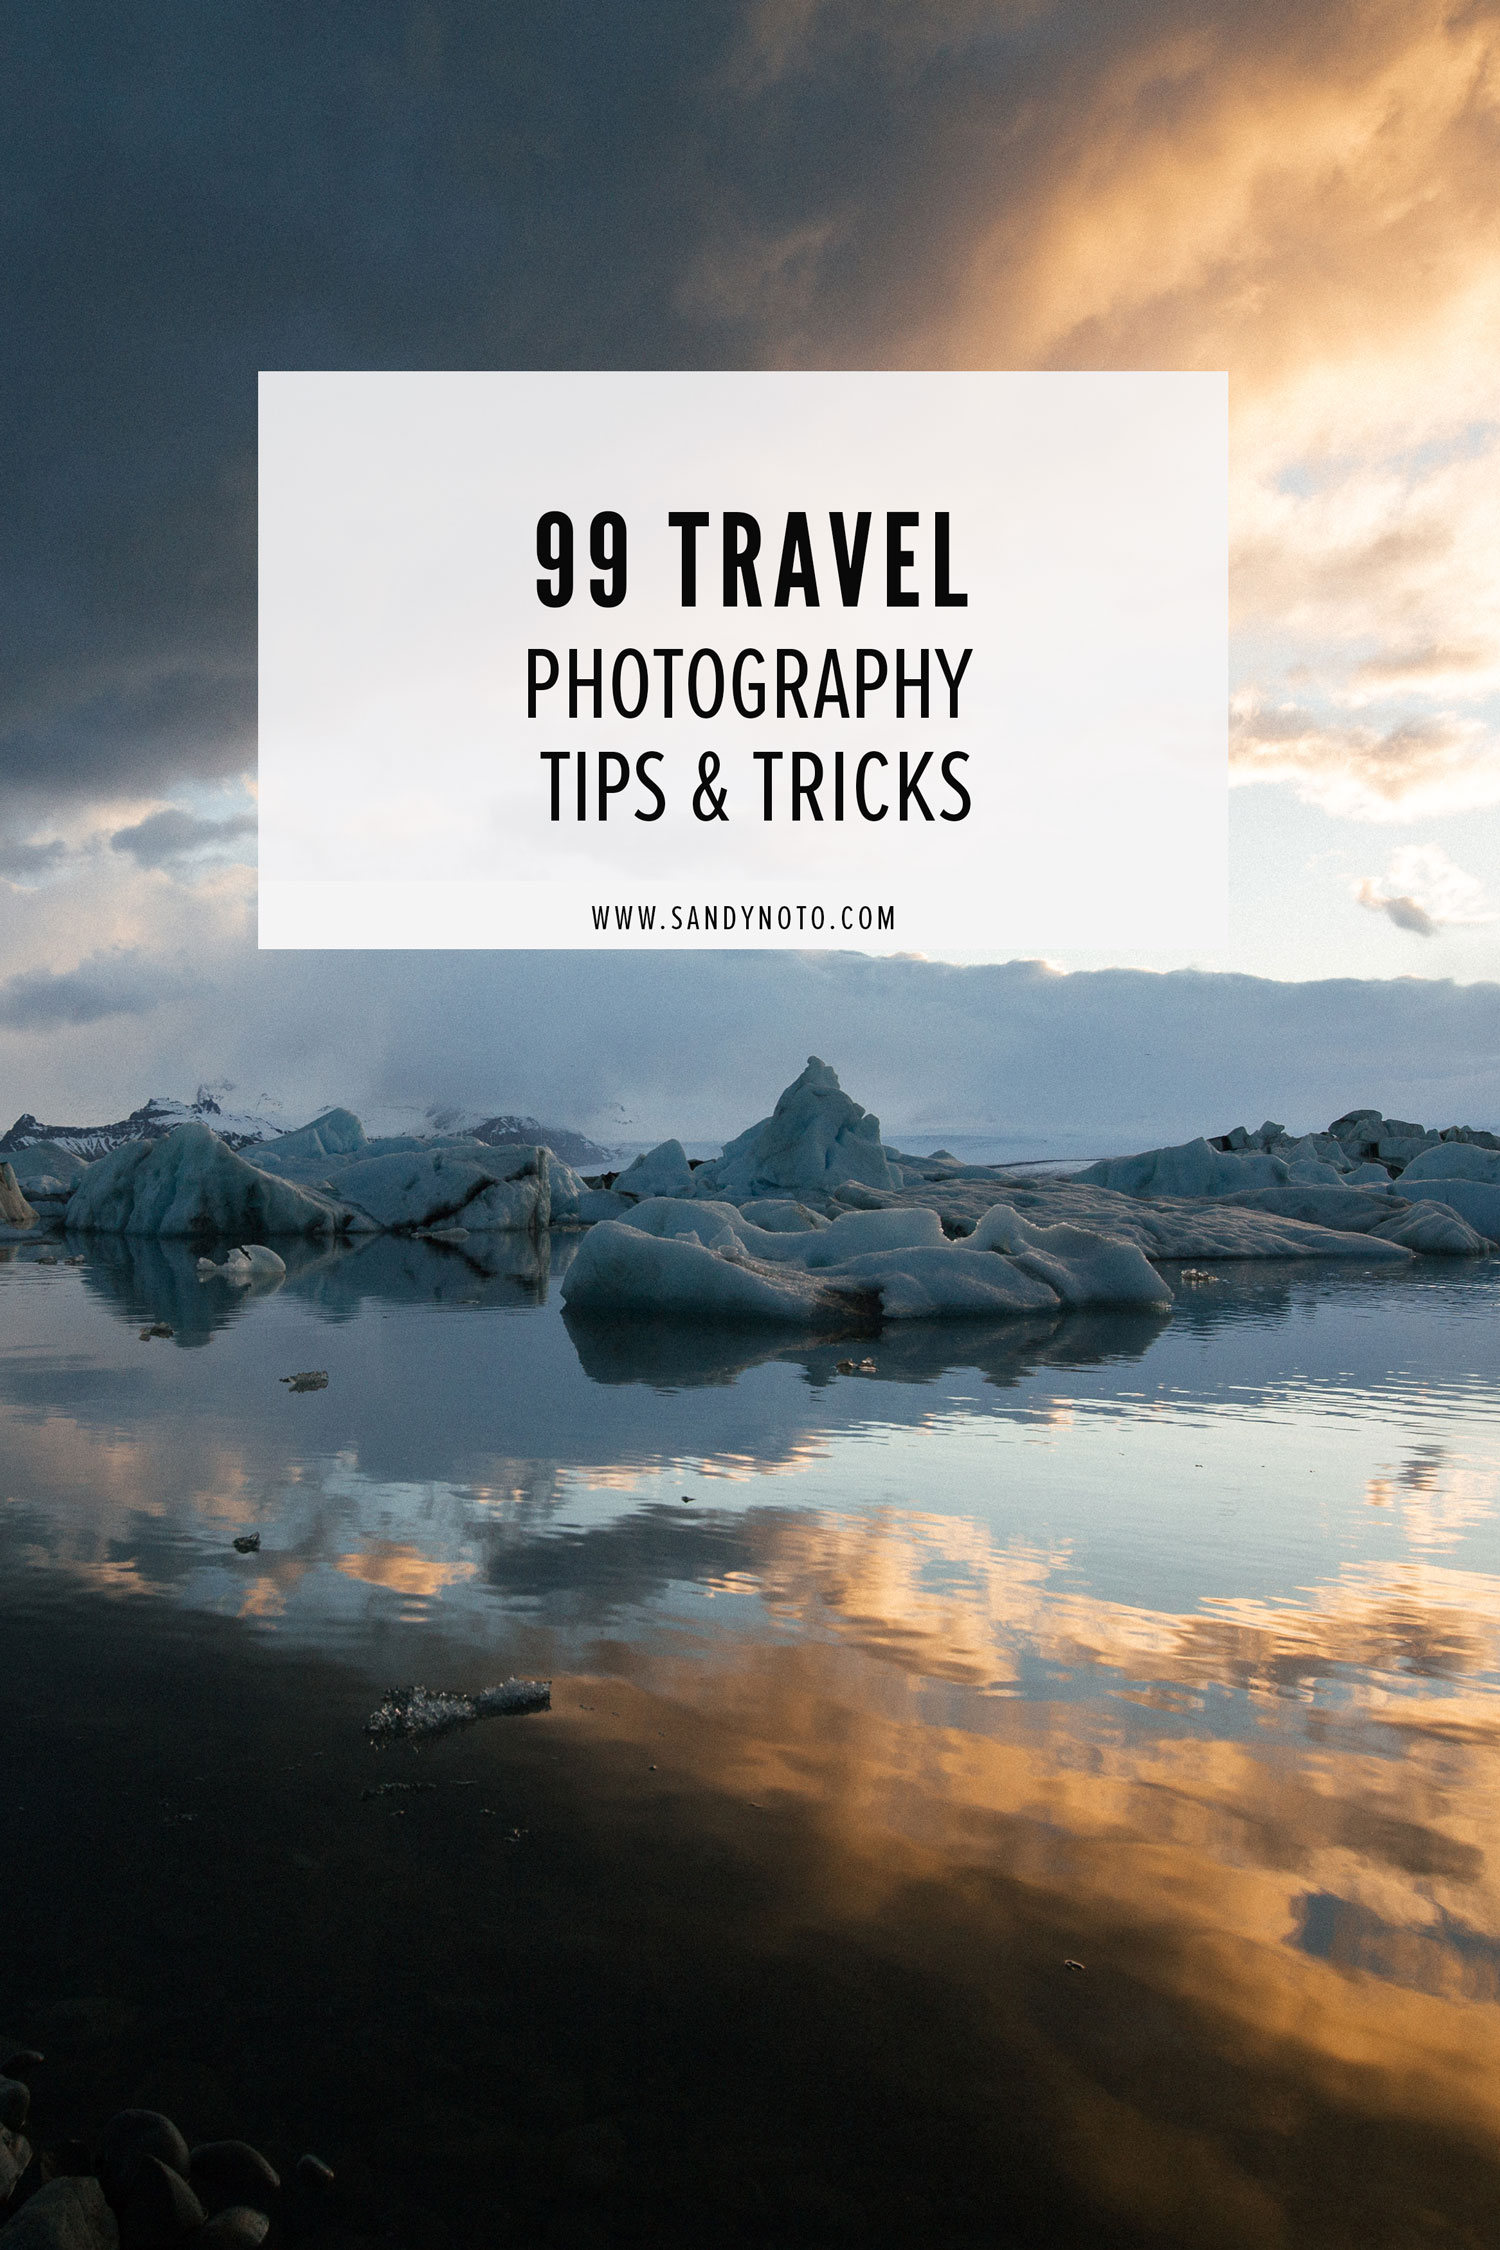 Travel Photography Tips & Tricks